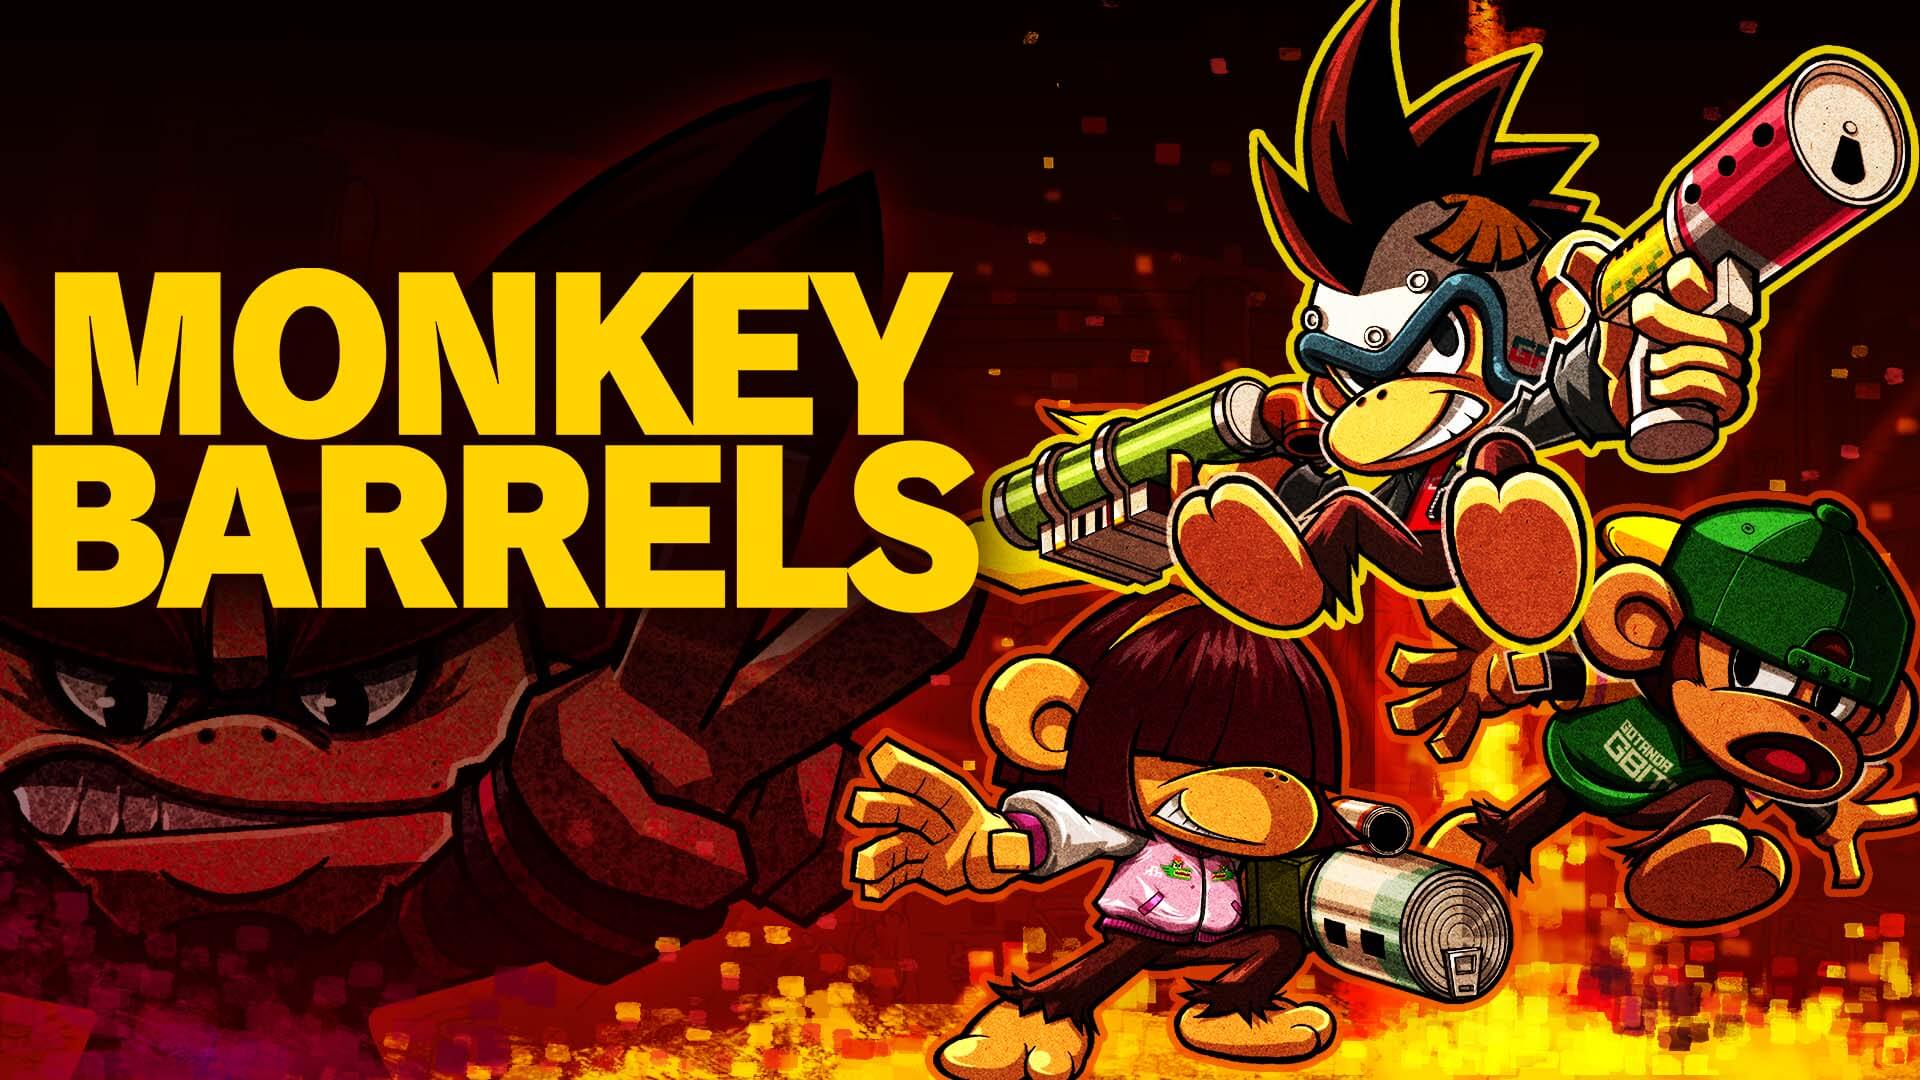 Monkey Barrels Shoots This February 9th on EGS